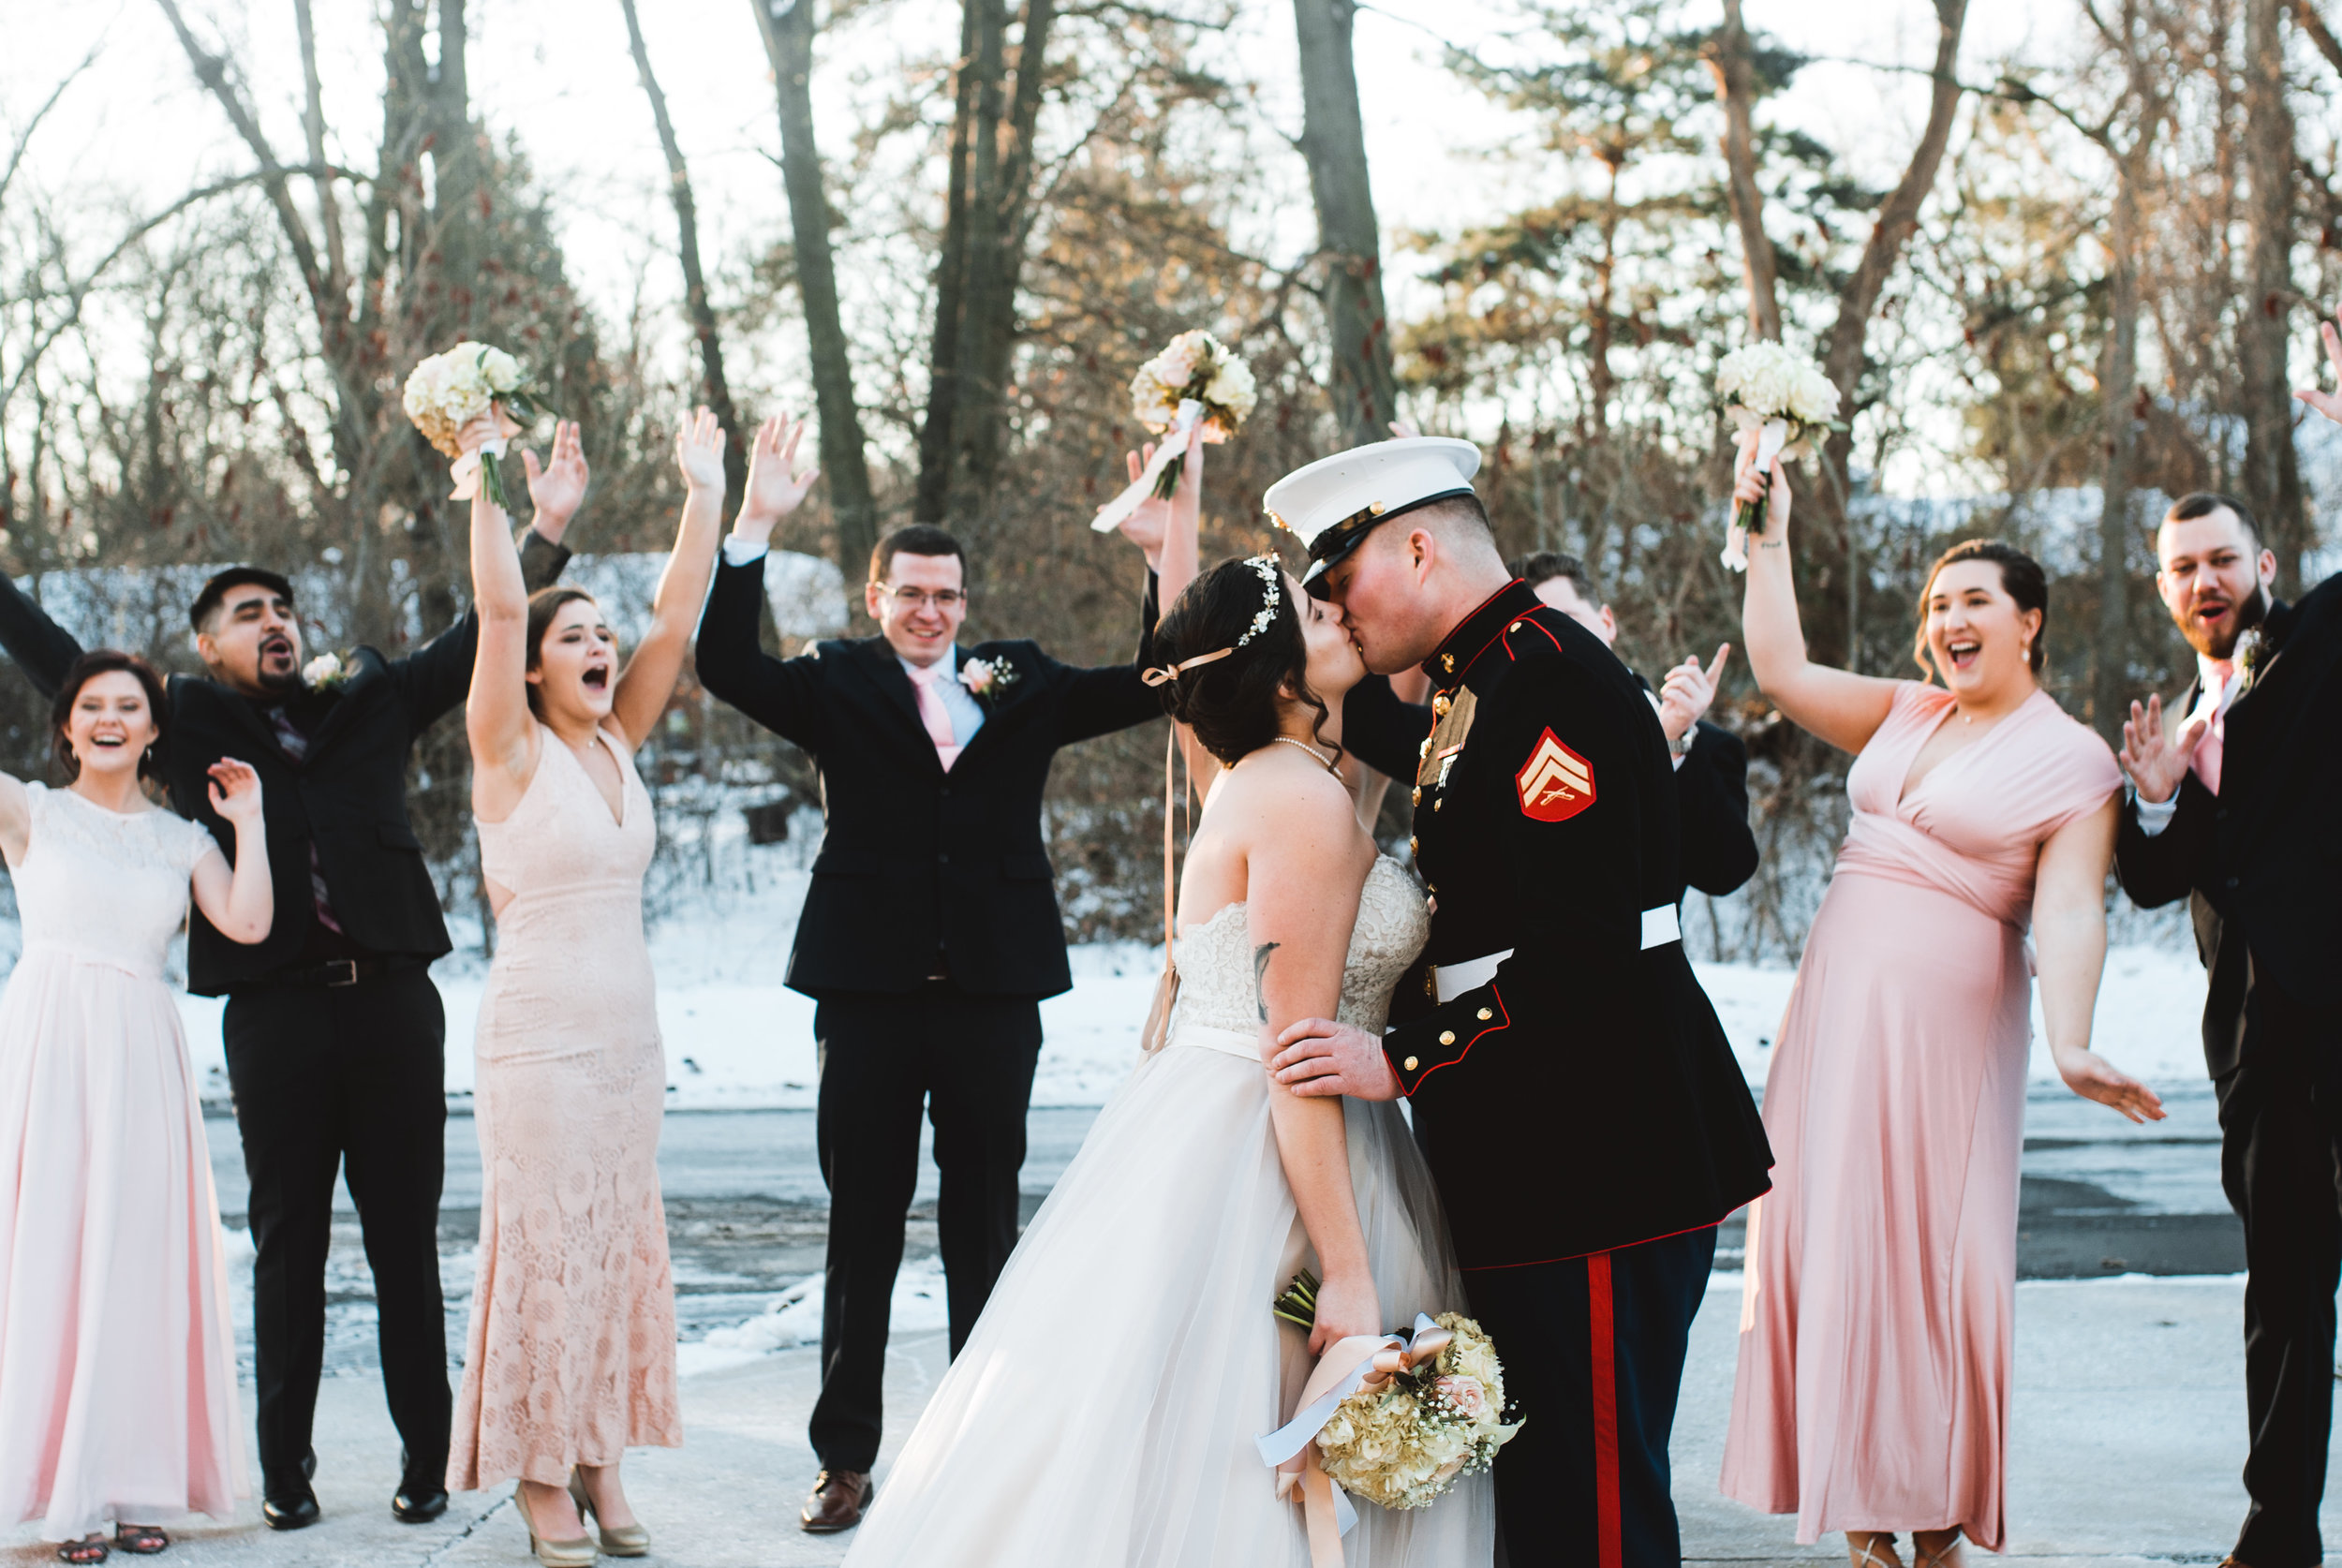 Bridal party cheering for bride and groom